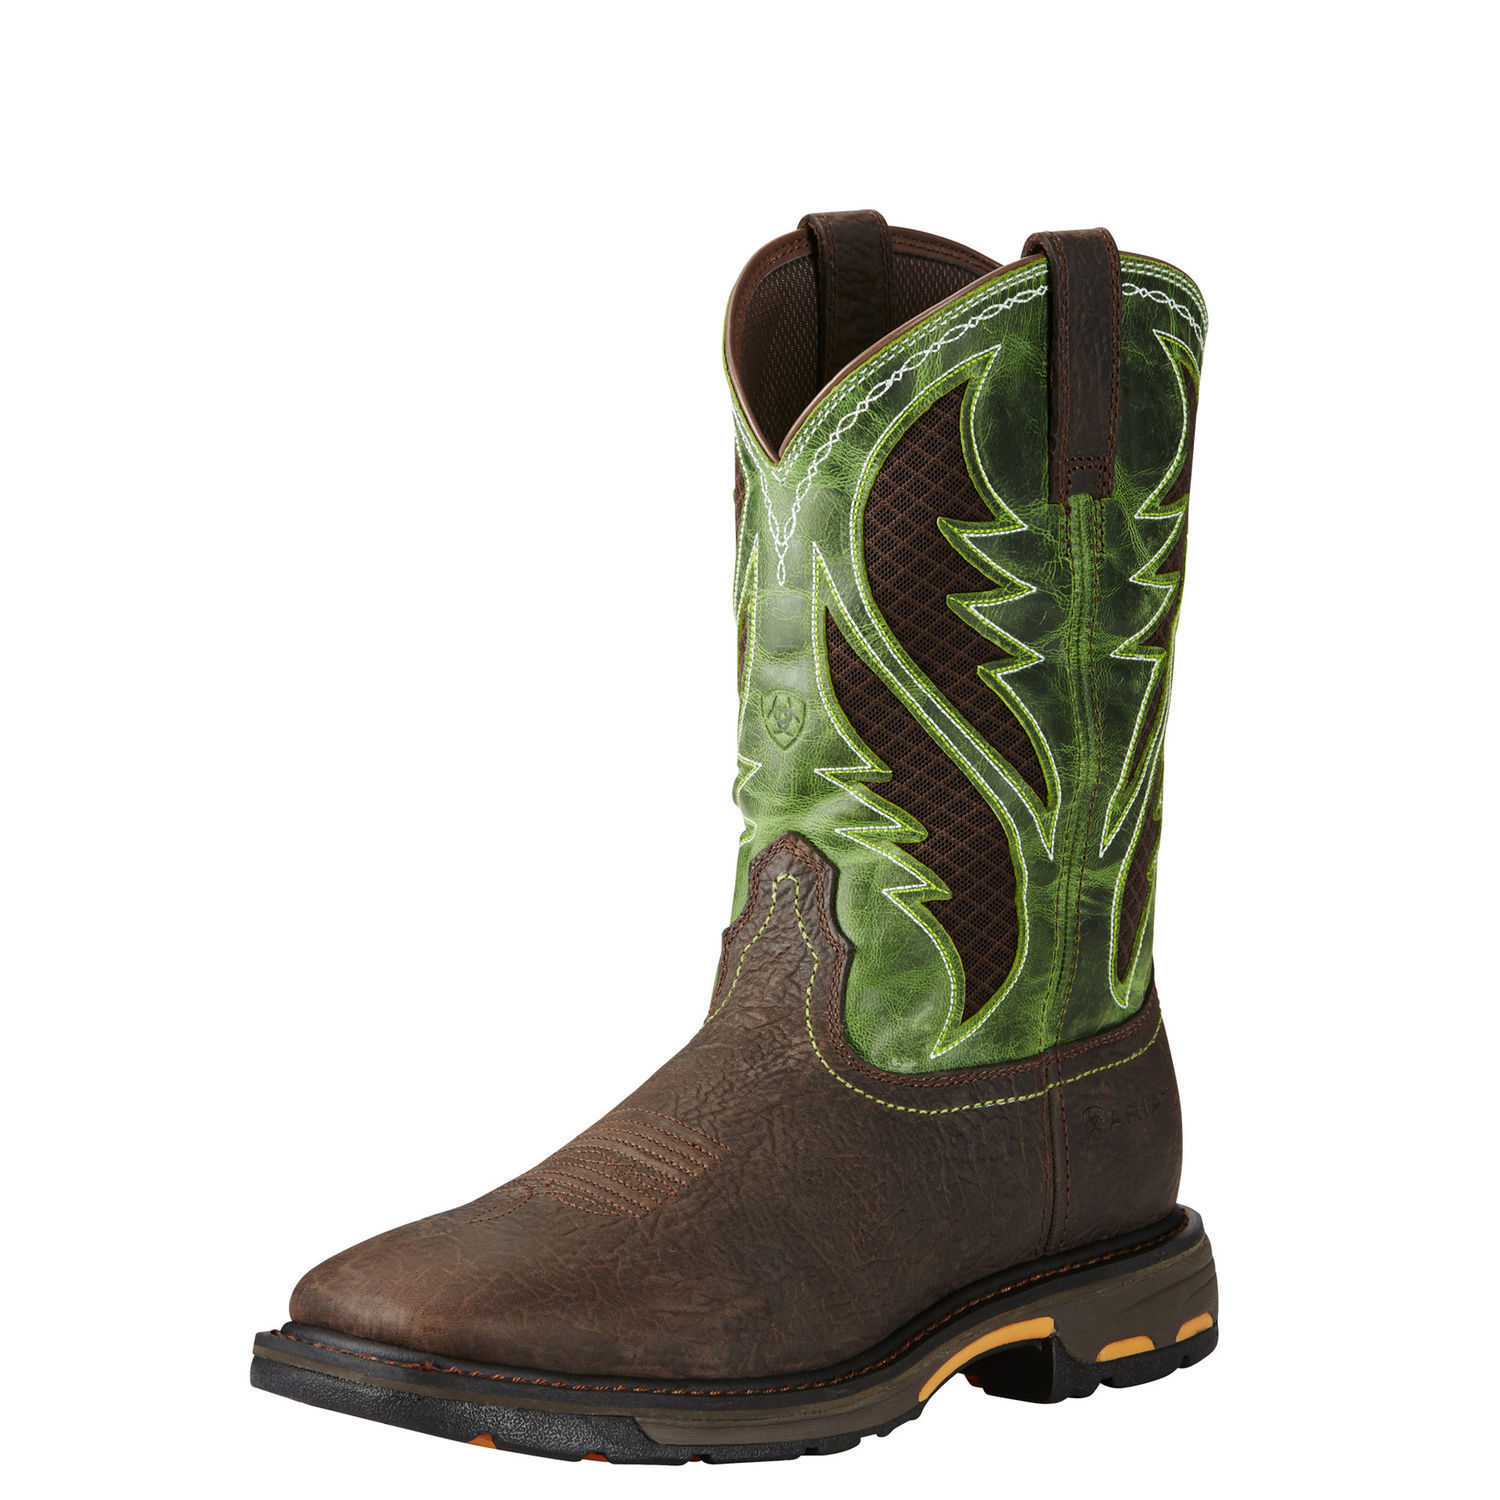 6377d081736 Details about Ariat 10020084 Workhog Venttek Safety Toe Green Non-Slip EH  Rated Work Boots